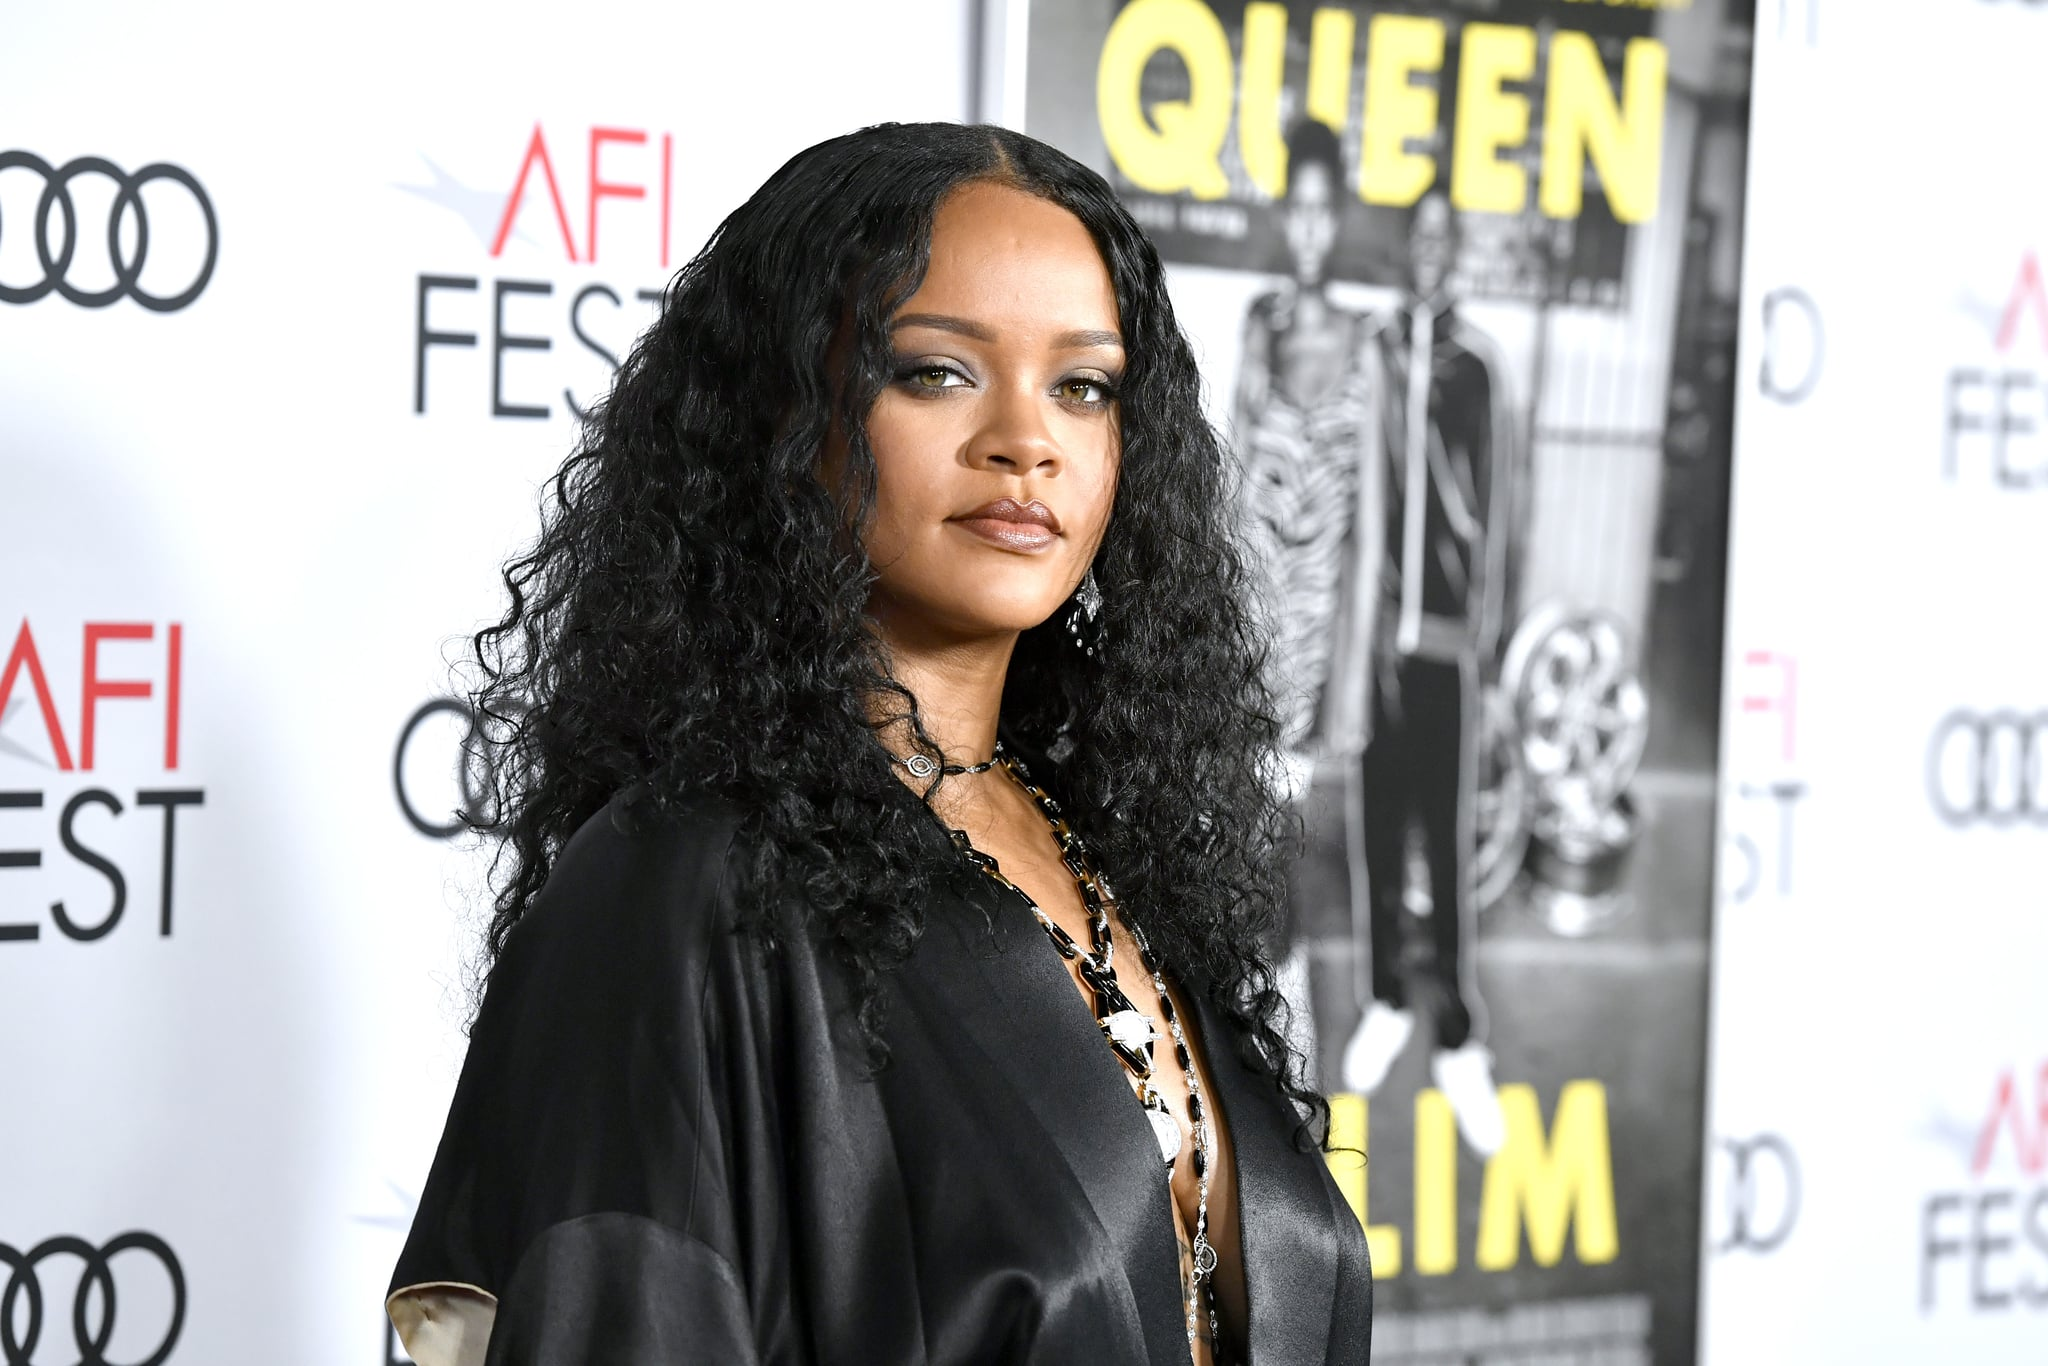 HOLLYWOOD, CALIFORNIA - NOVEMBER 14: Rihanna attends the